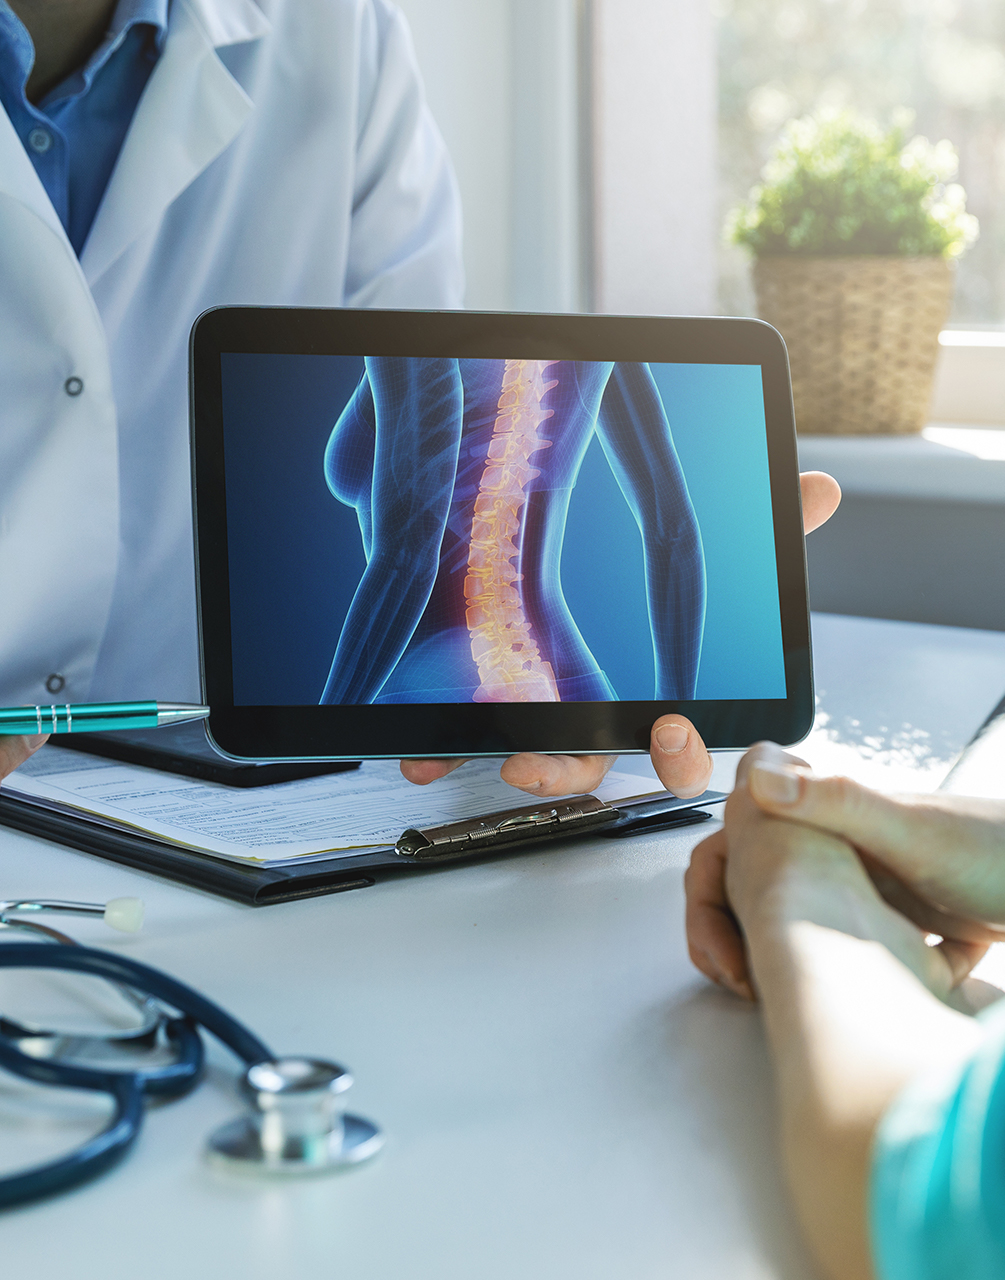 Dr. Todd Lanman Expands Spinal Neurosurgery Practice With The Launch Of His Advanced Disc Replacement Spinal Restoration Center